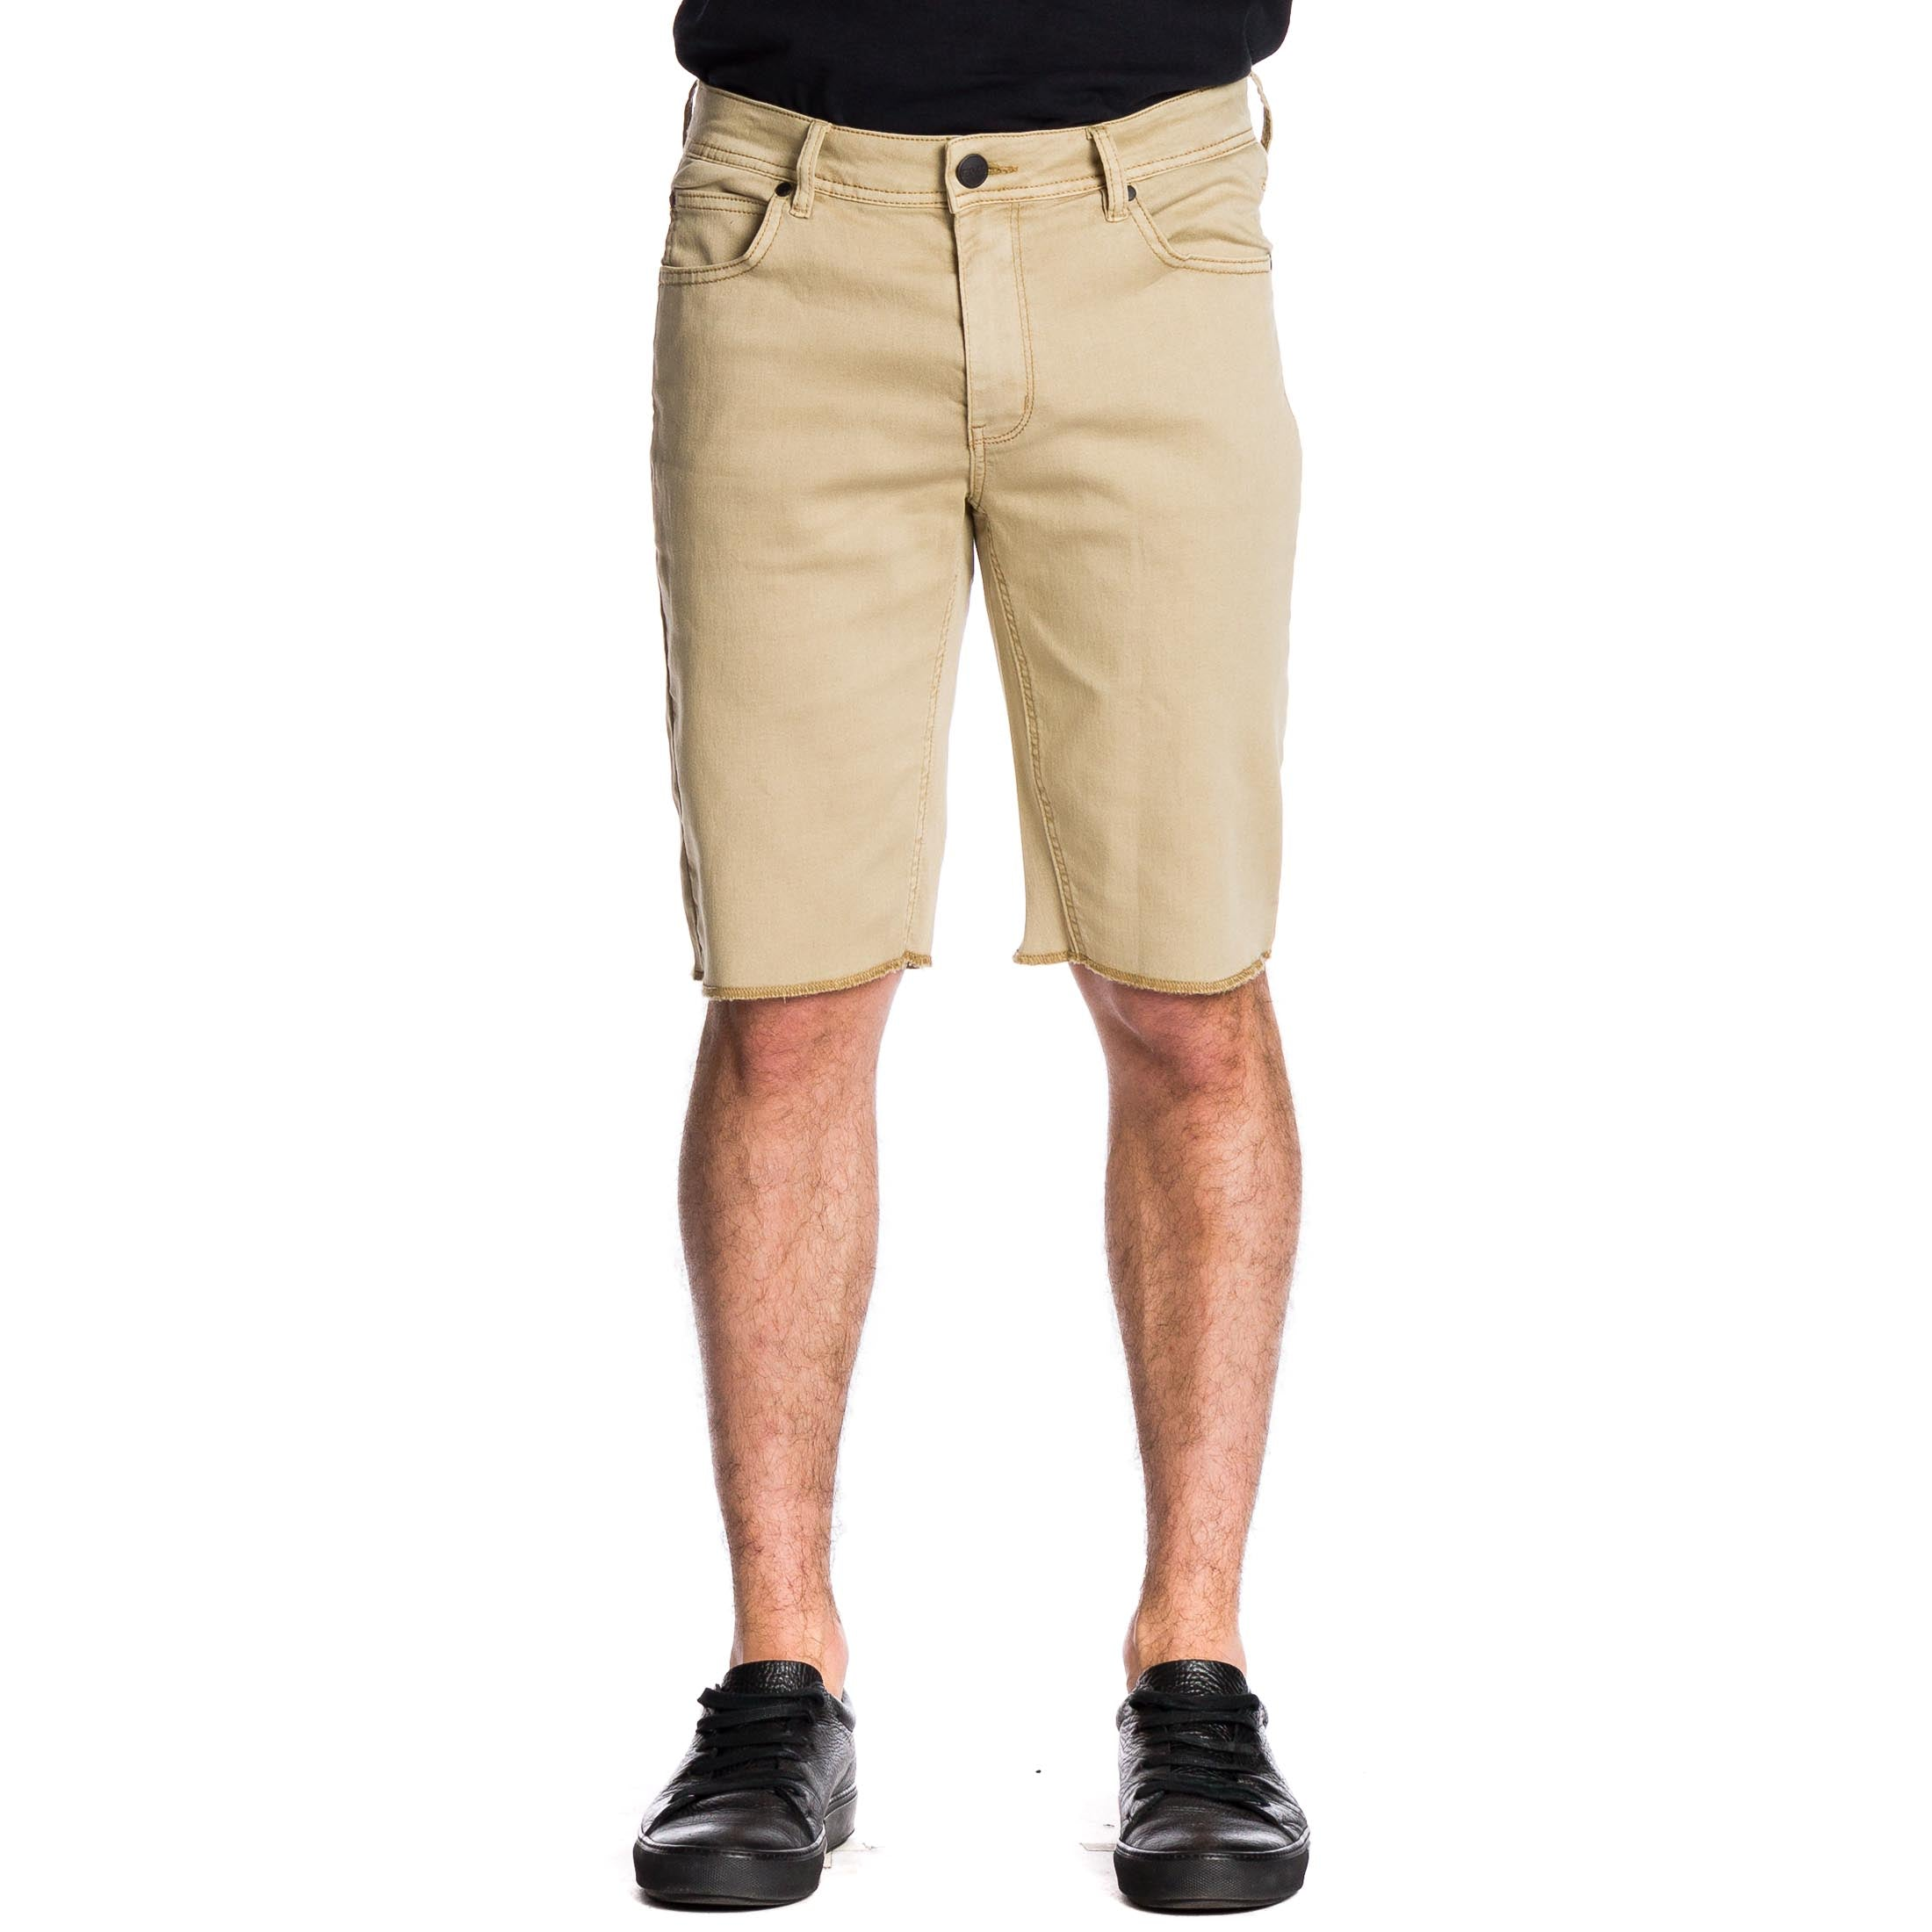 Now Denim Short - Camel - Ezekiel Clothing